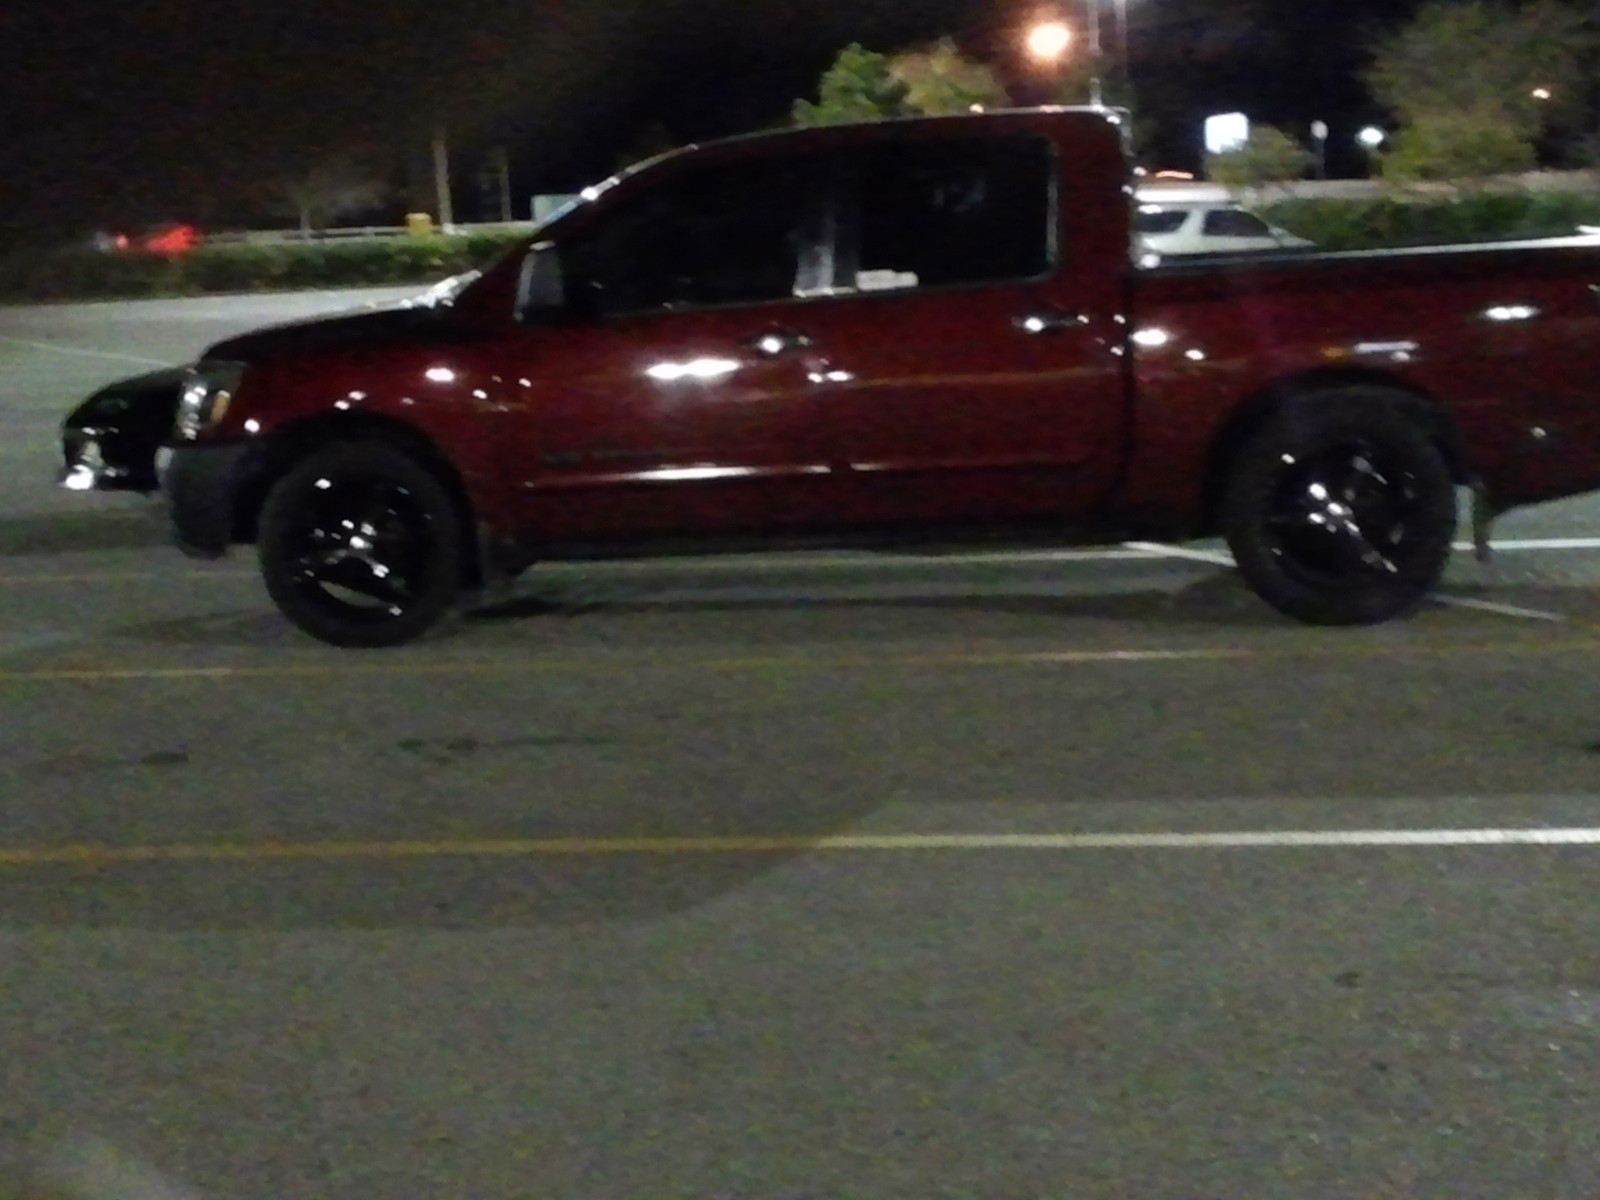 2005 Nissan Titan LE 1/4 mile Drag Racing trap speed 0-60